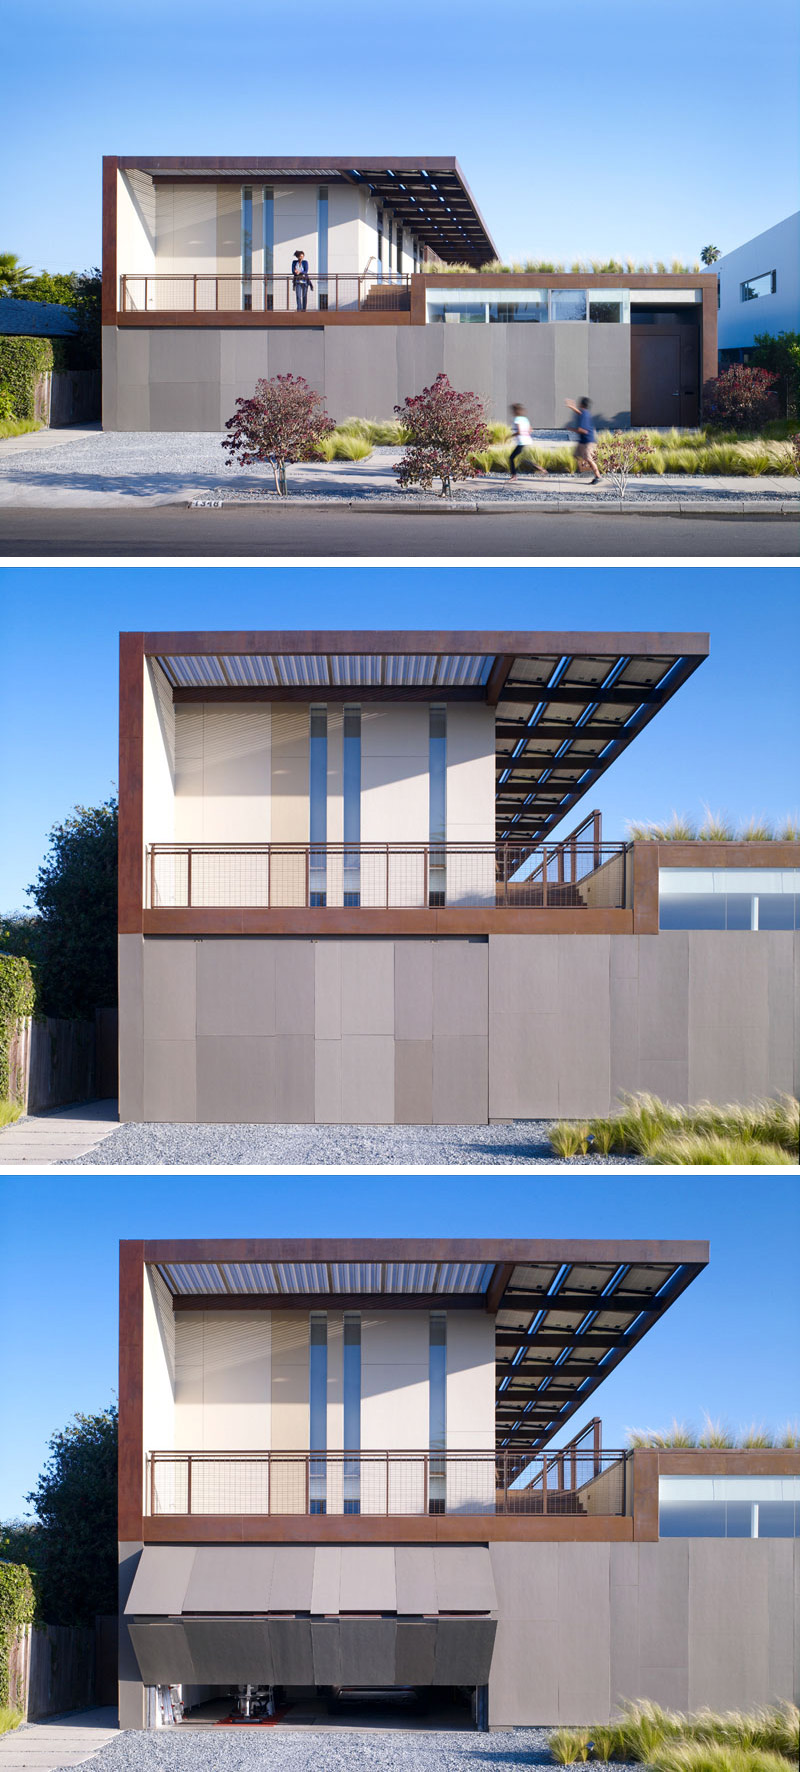 The front of this modern house appears to have a solid lower level until the garage door is activated, then it folds out and up to reveal the contents inside. A balcony on the second floor makes it easy to see what's happening on the street.